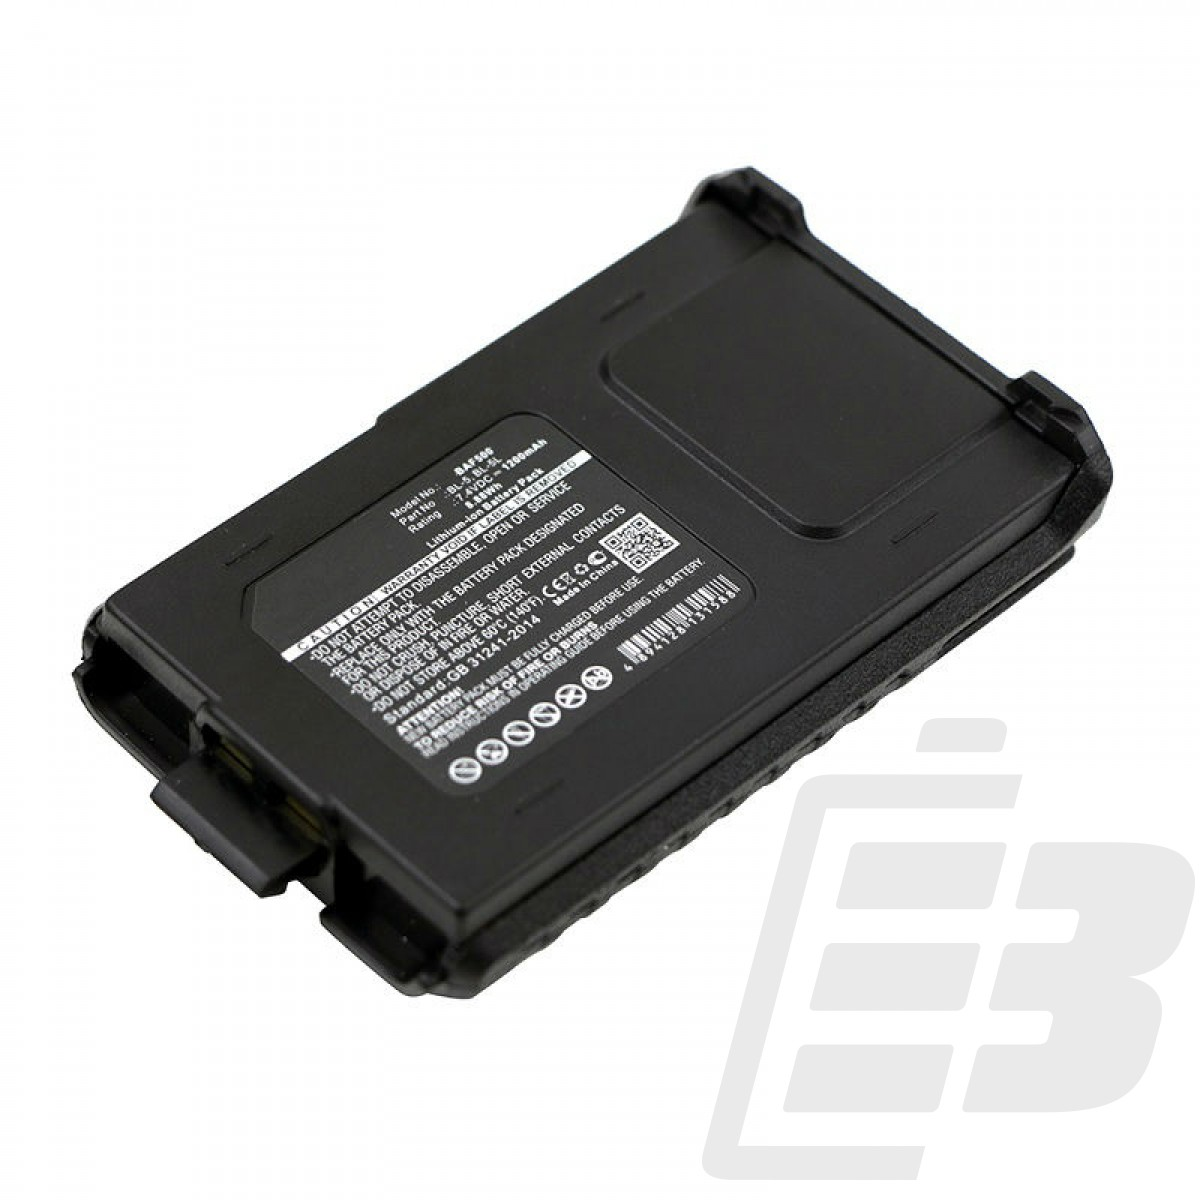 Two-Way radio battery Baofeng UV-5R_1